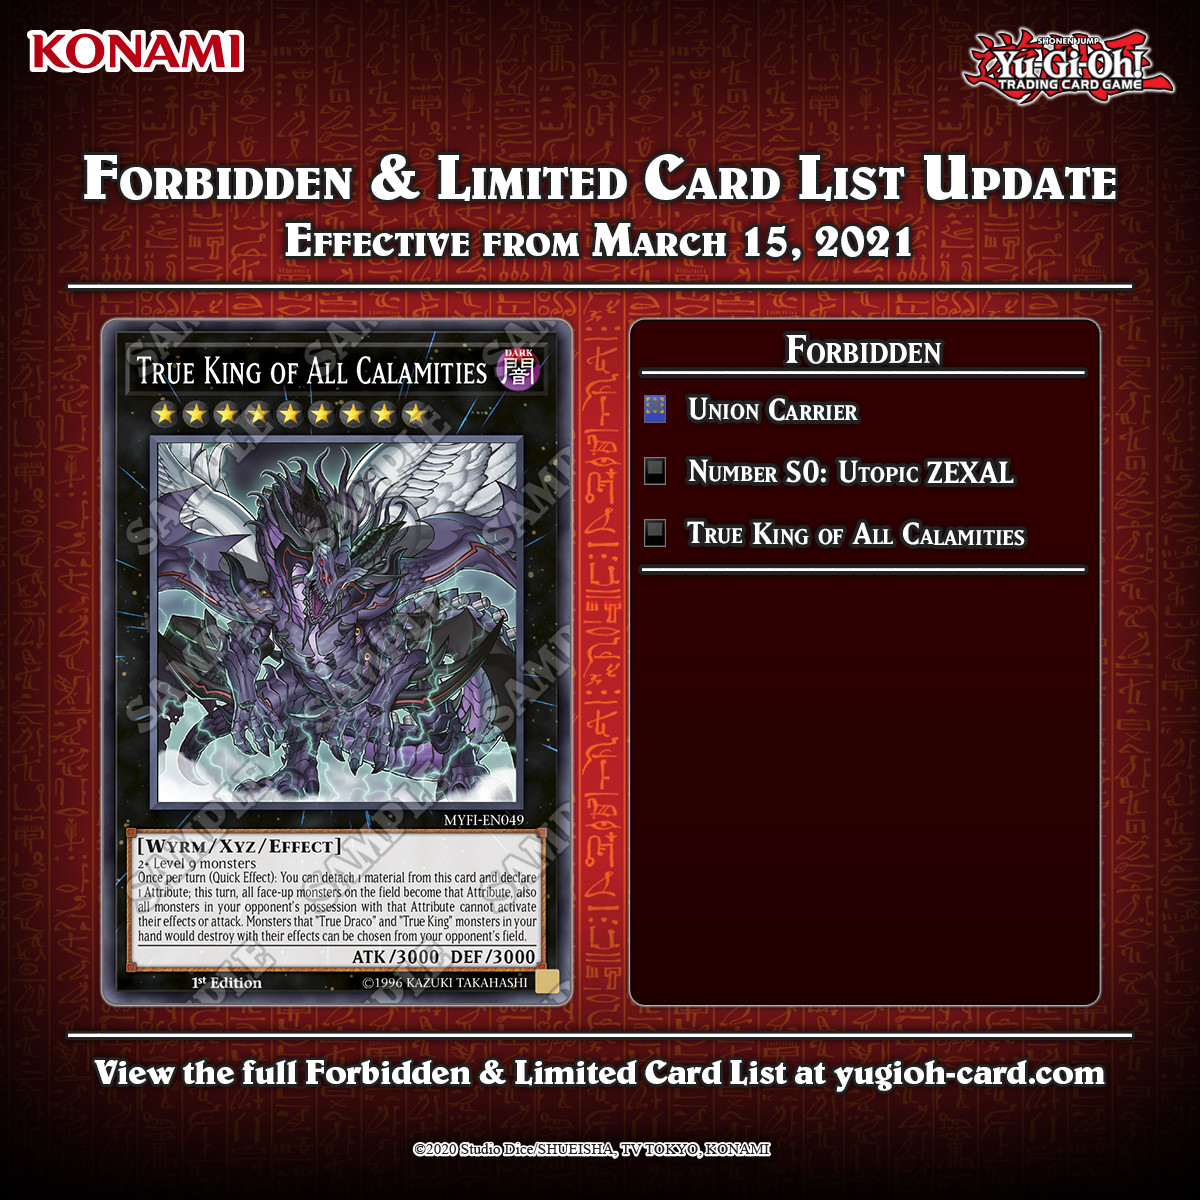 Banlist. Good, Good Union Carrier is a bit weird, but not unwarranted BUT WHERE THE IS DRAGOON Fun fact, Cyber Angel Benten is currently the only ritual monster